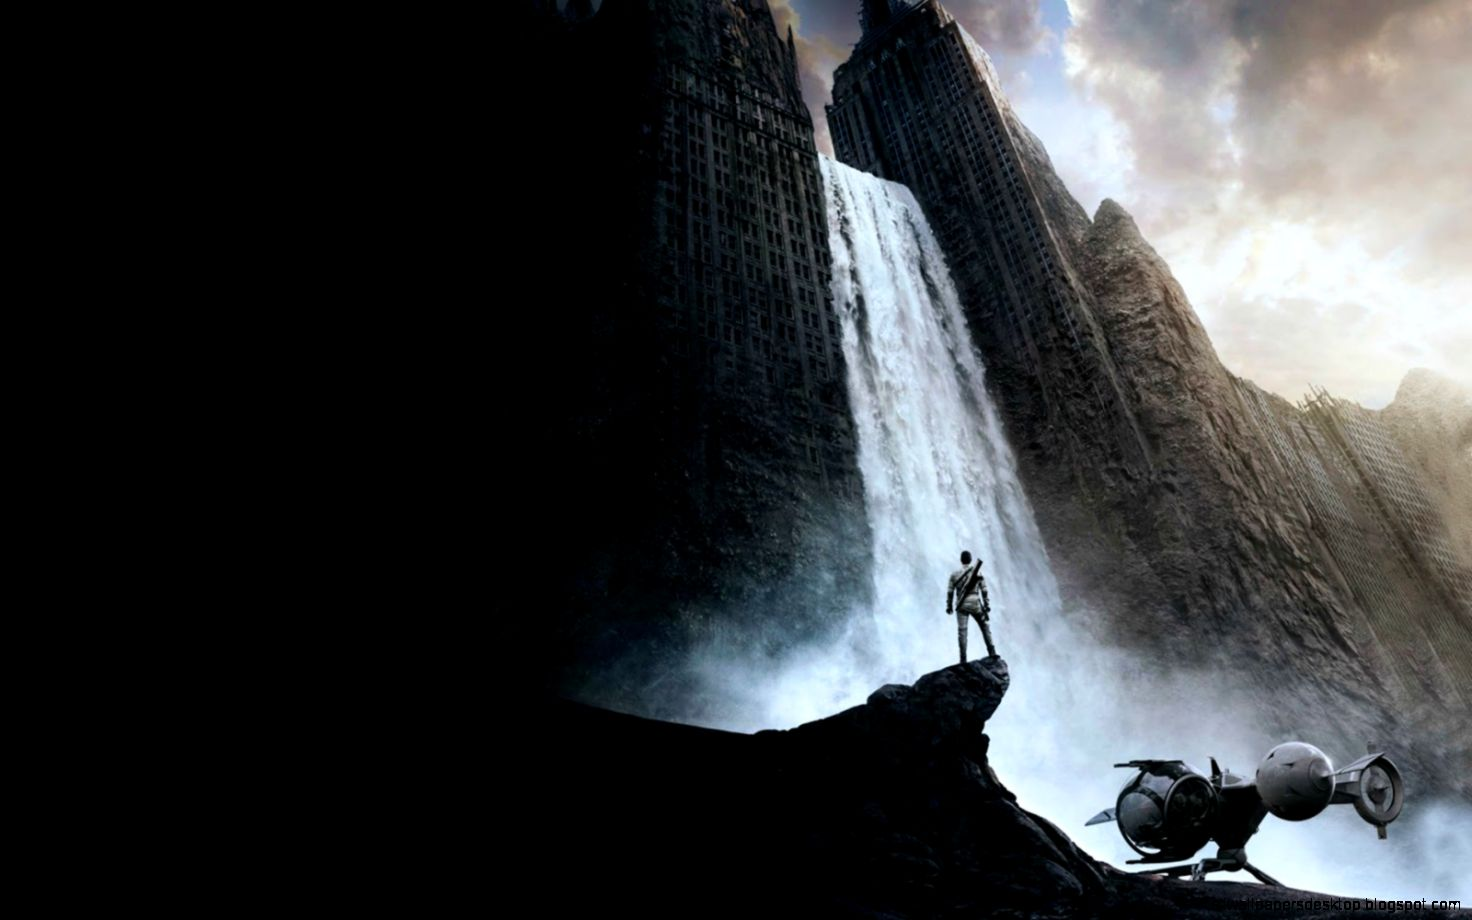 Oblivion 2013 Movie 4k Hd Desktop Wallpaper For 4k Ultra: Oblivion Hd For Wallpapers